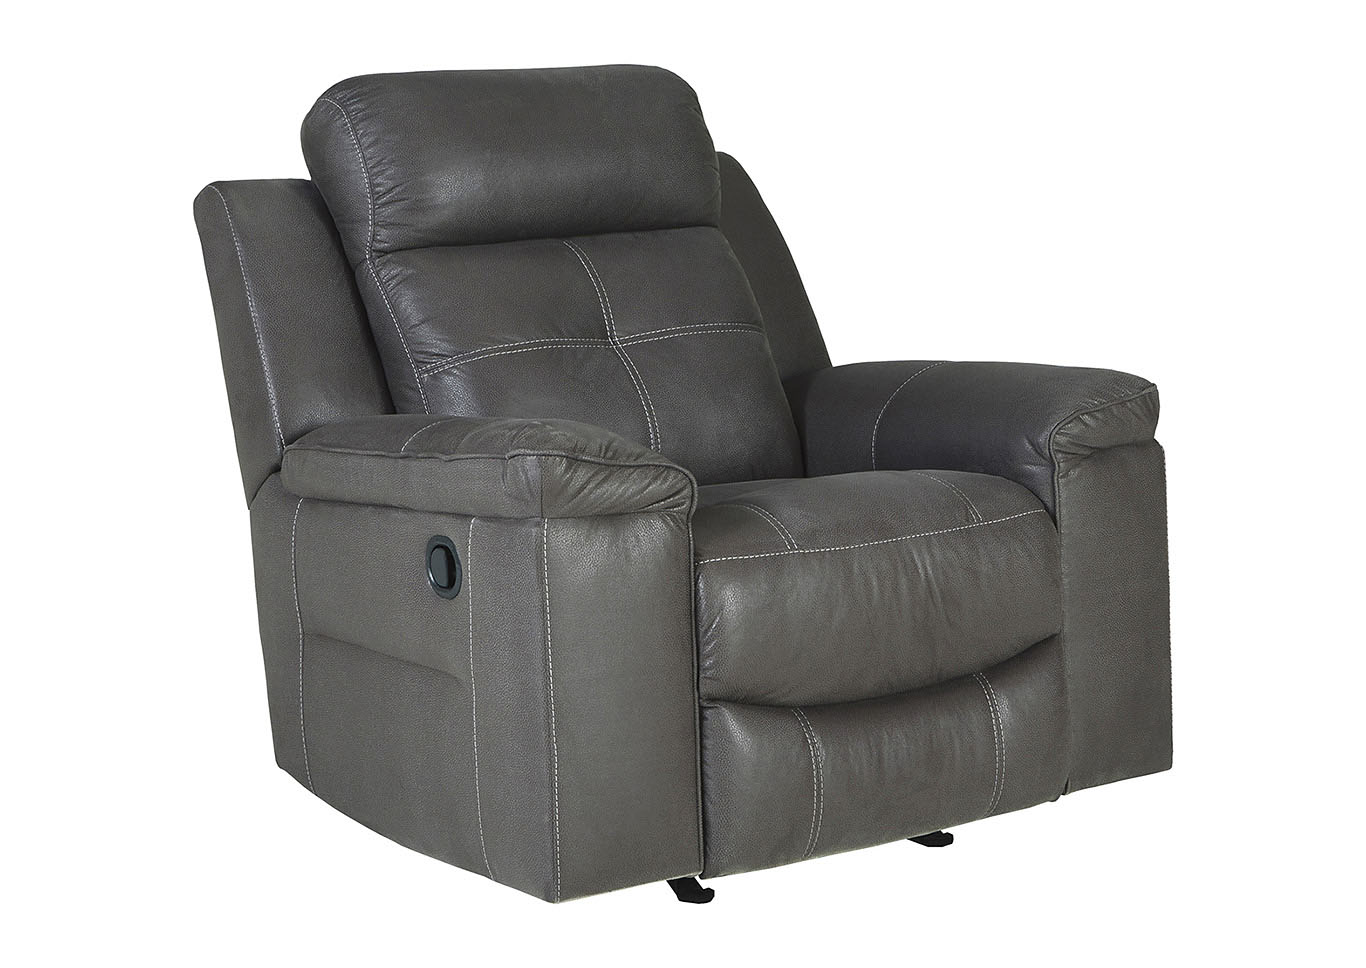 Jesolo Dark Gray Rocker Recliner,Signature Design By Ashley